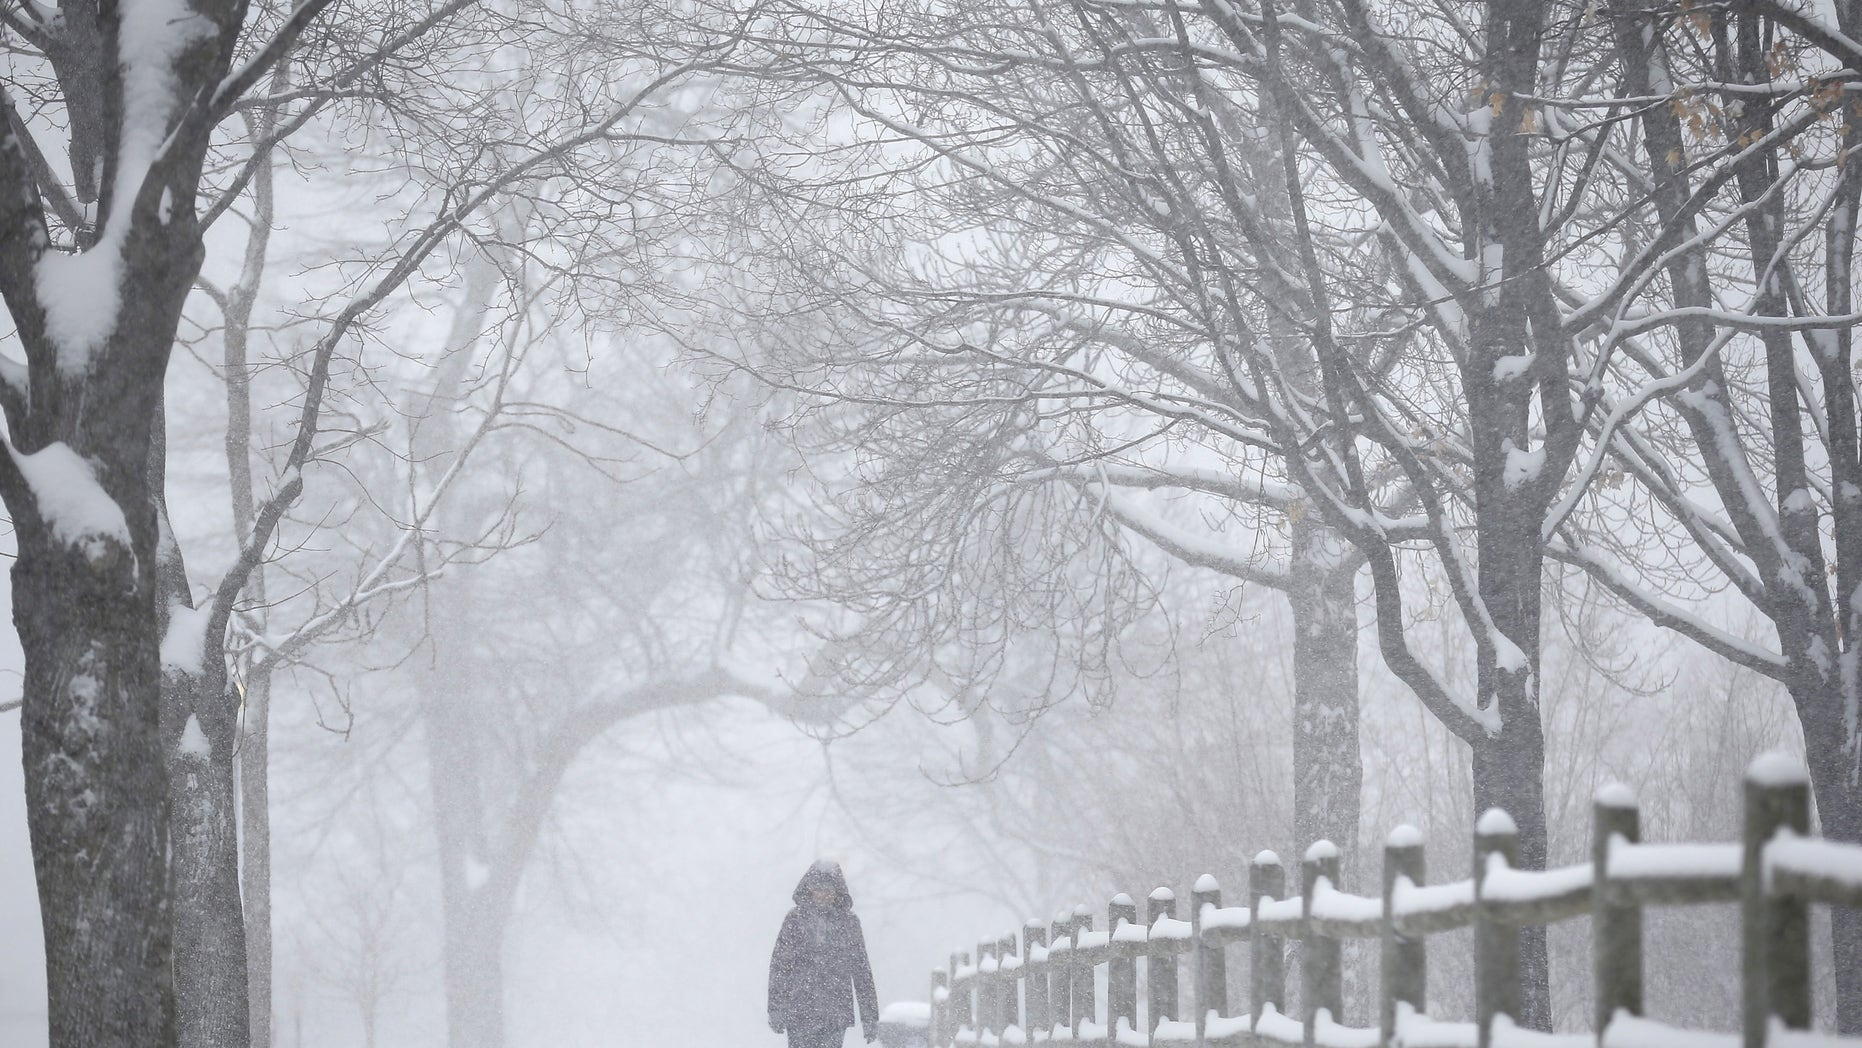 A woman walks down a street during a spring snow storm in the Chicago suburb of Evanston, Illinois March 23, 2015.